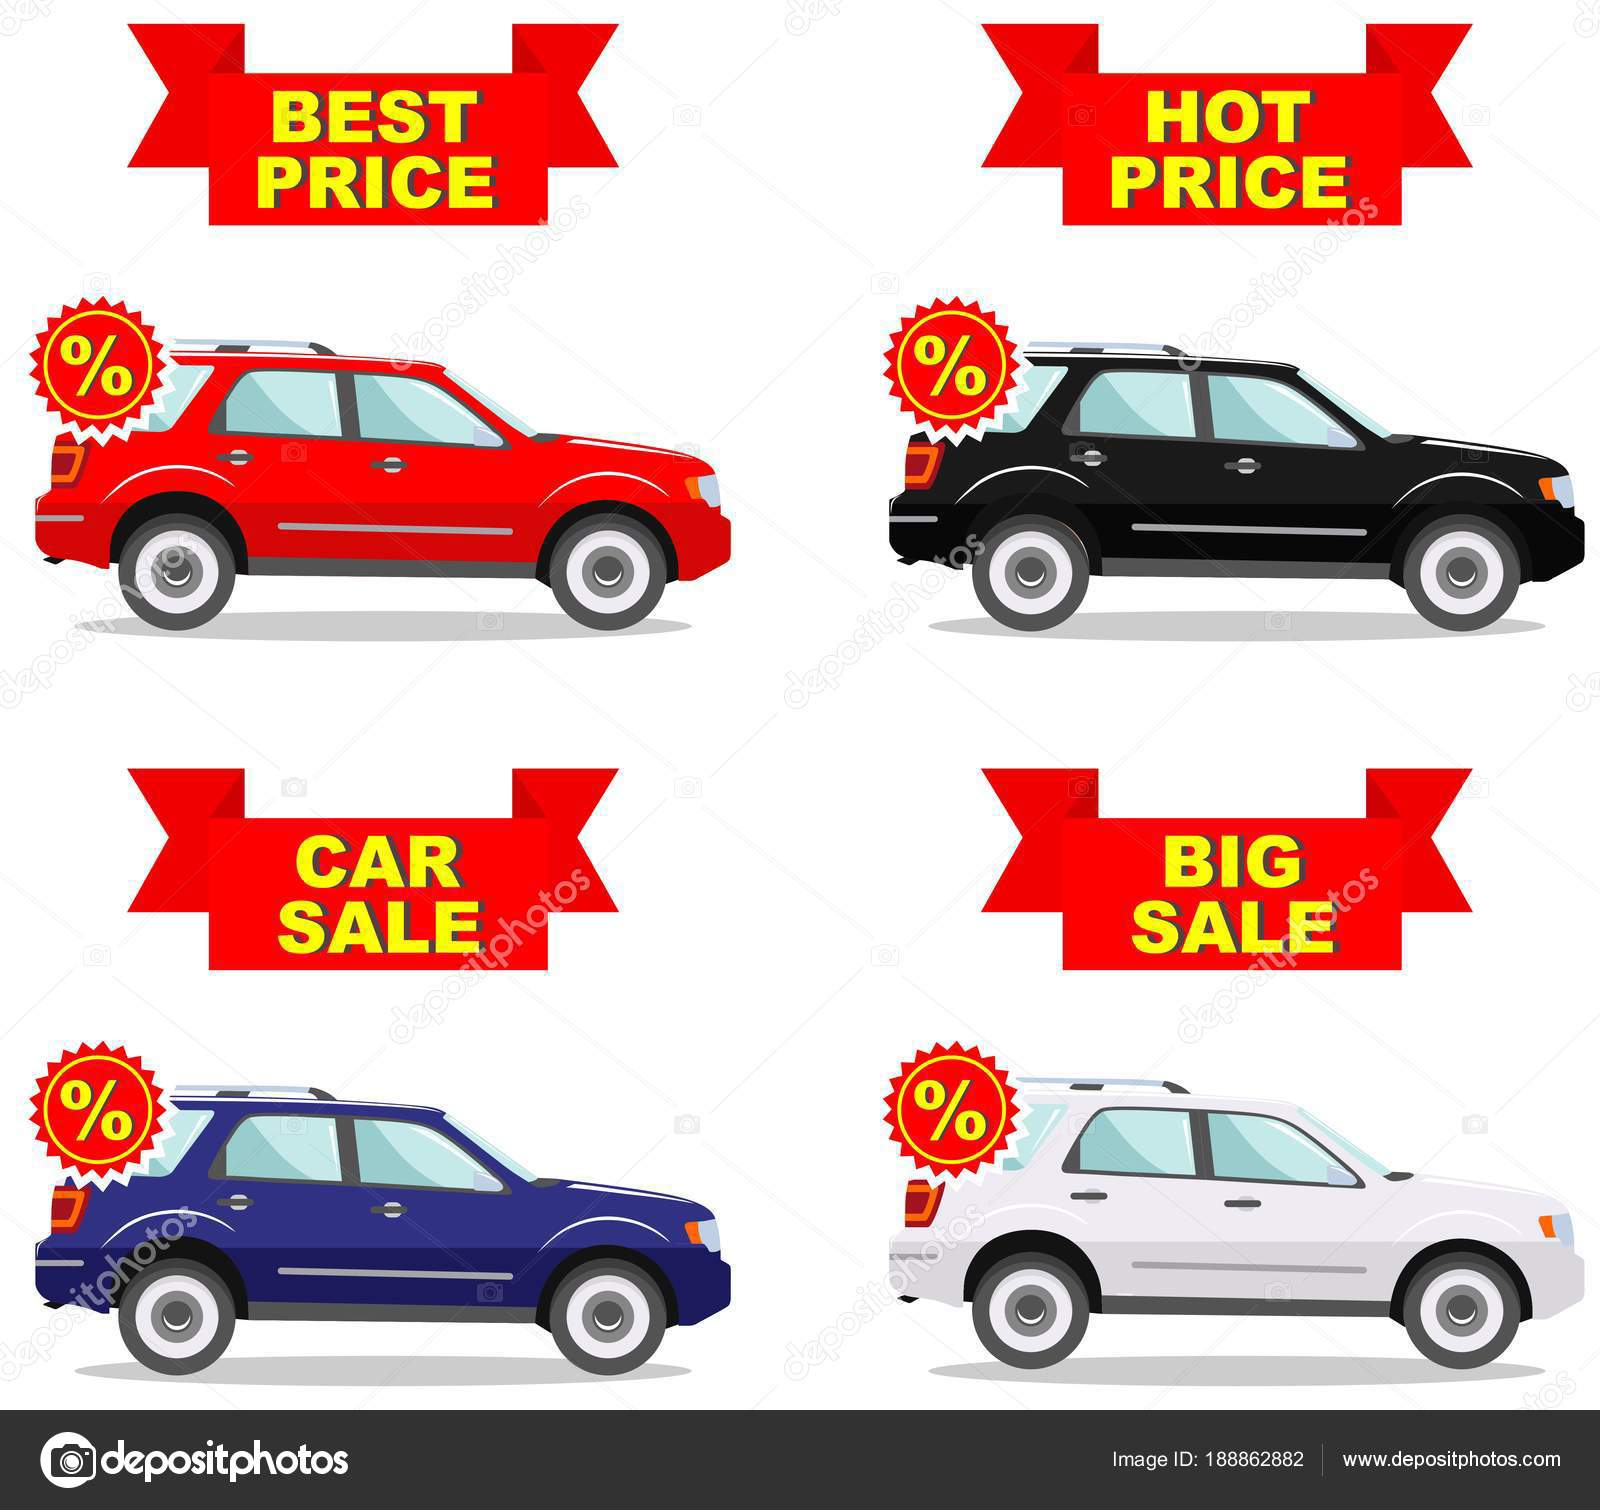 Cars Price Car Showroom Big Sale Hot Price Set Of Discount Icons For Cars